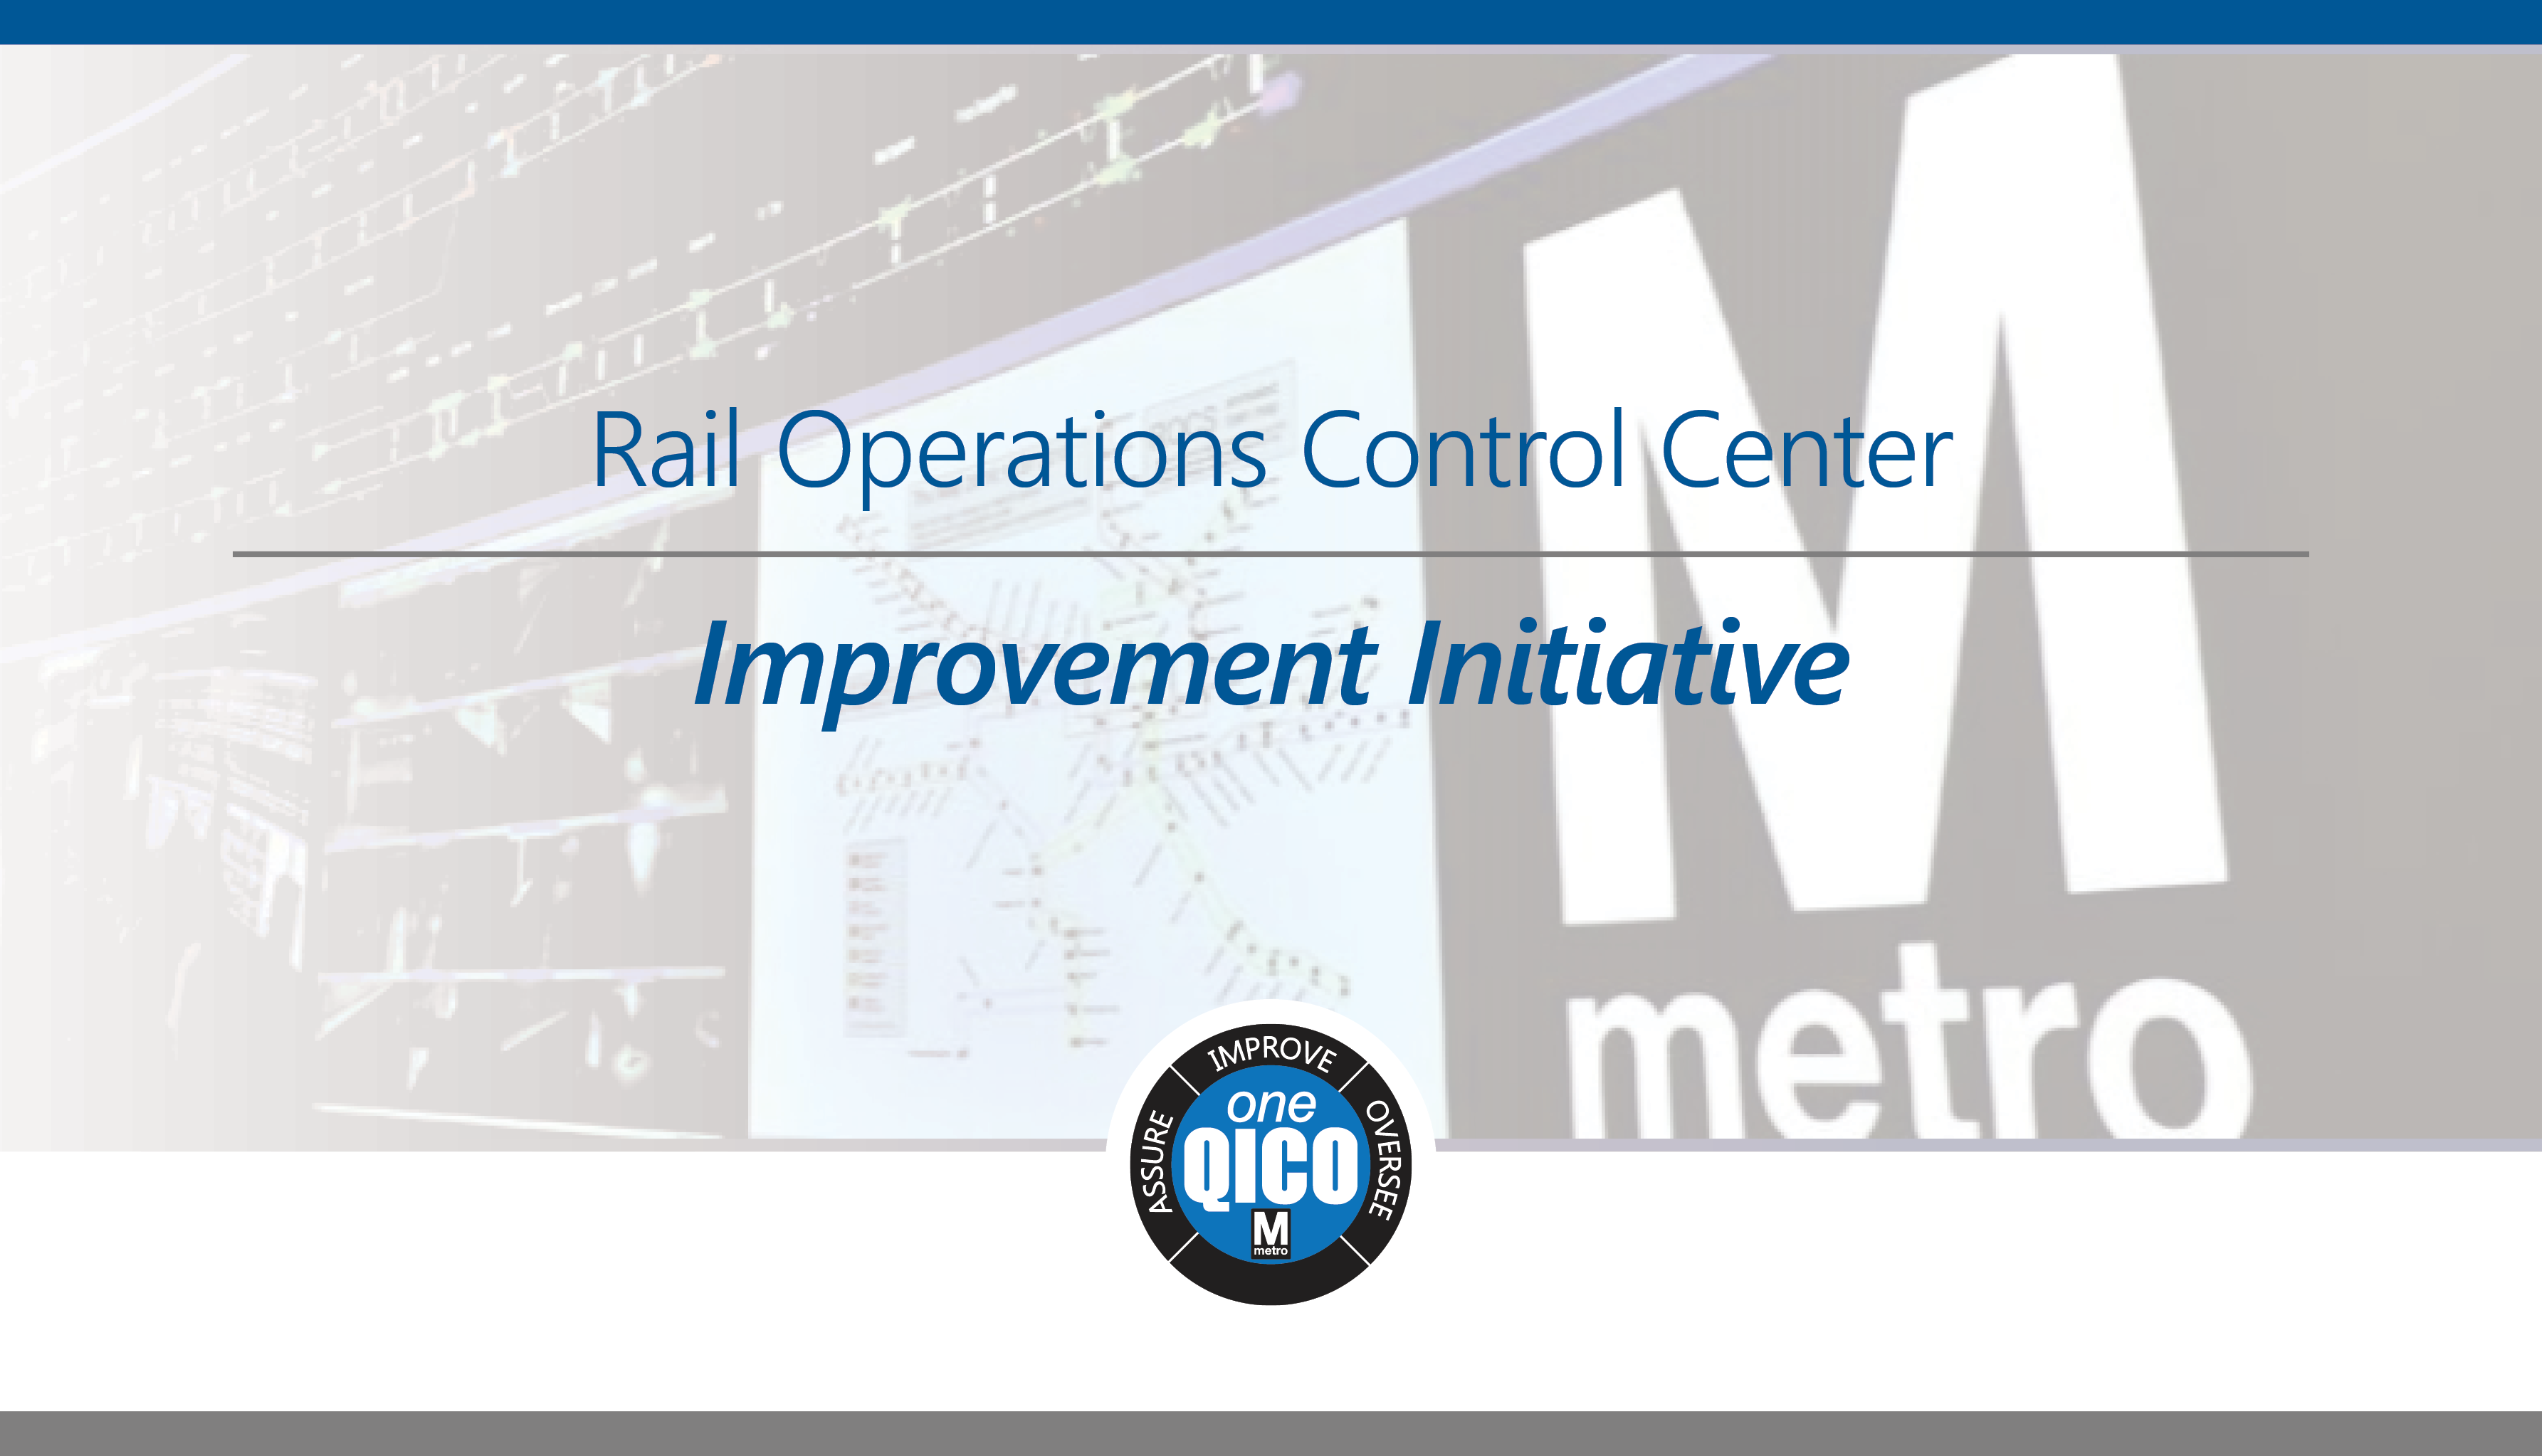 Rail Operations Control Center Improvement Initiative